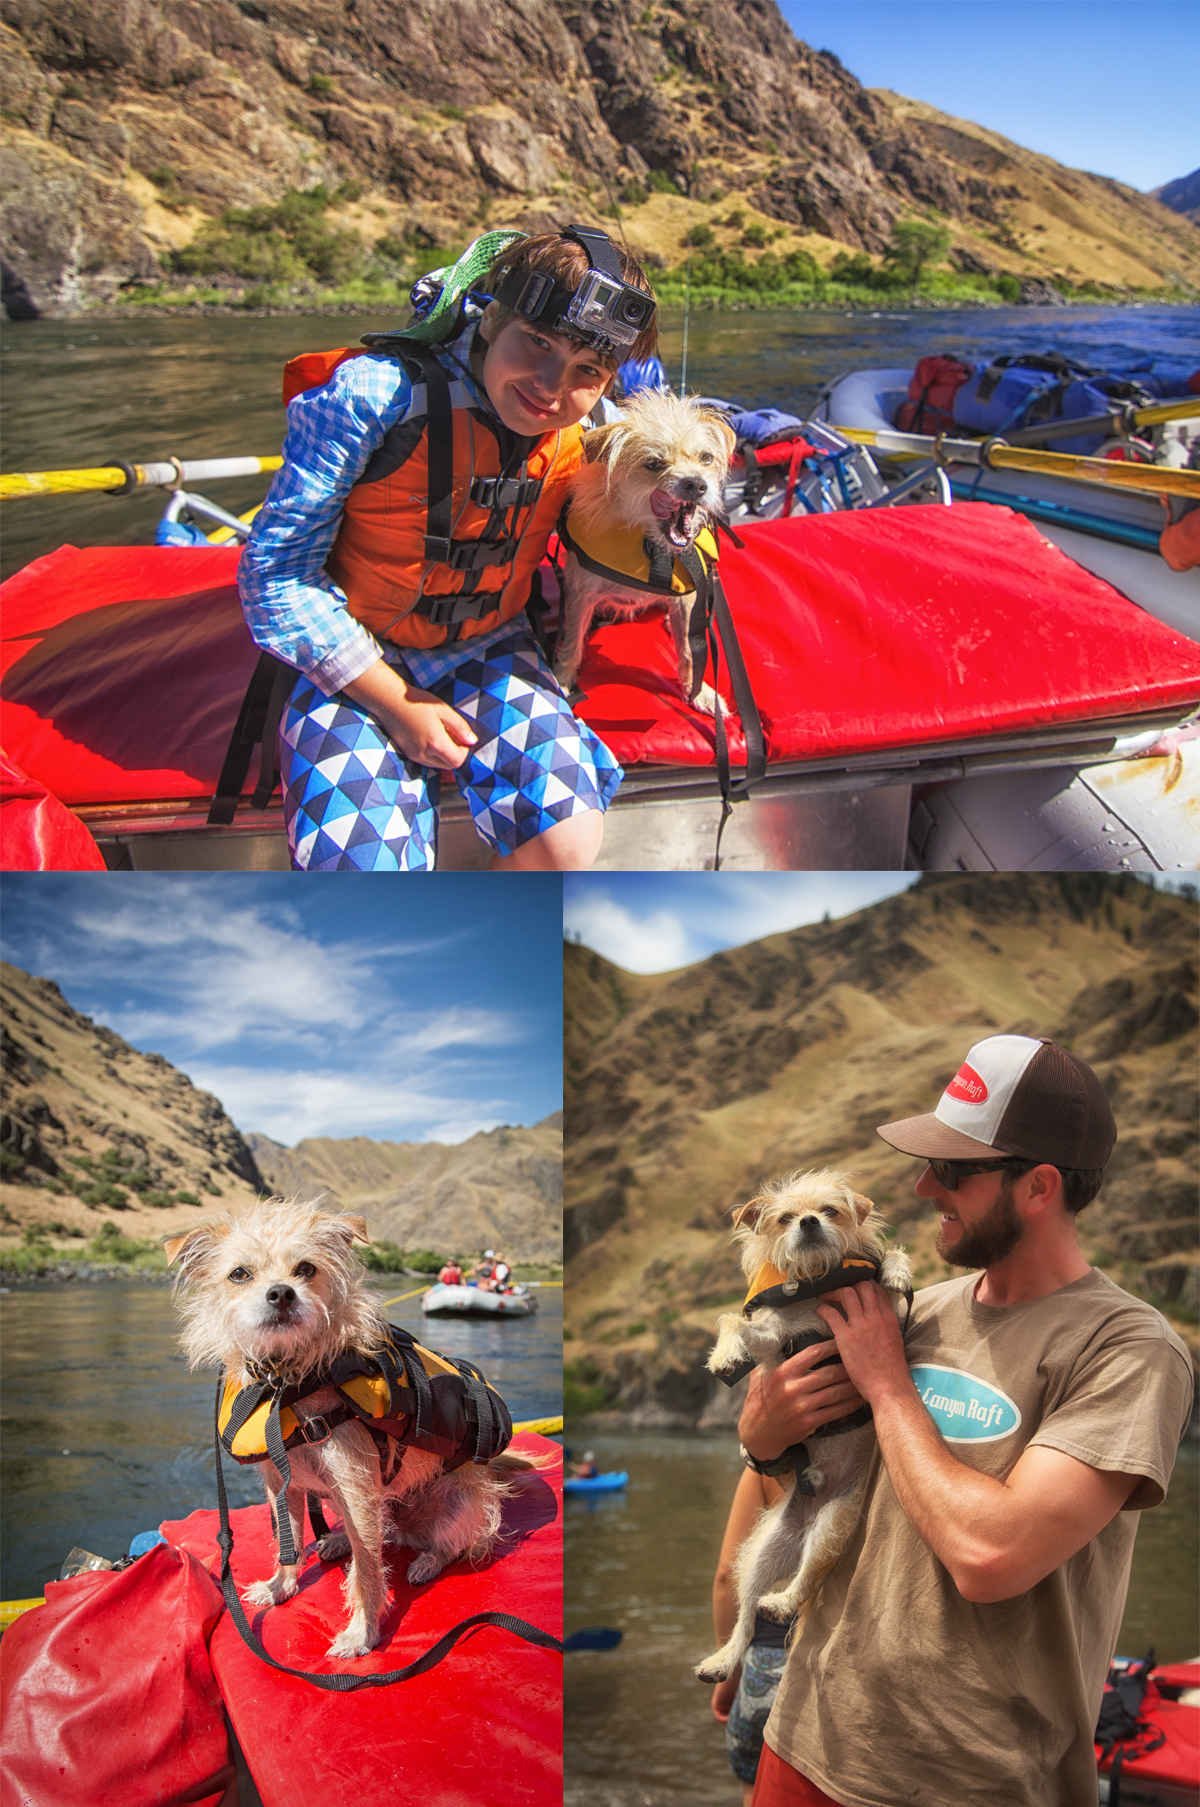 White Water Rafting with your dog in Hells Canyon via J5MM.com